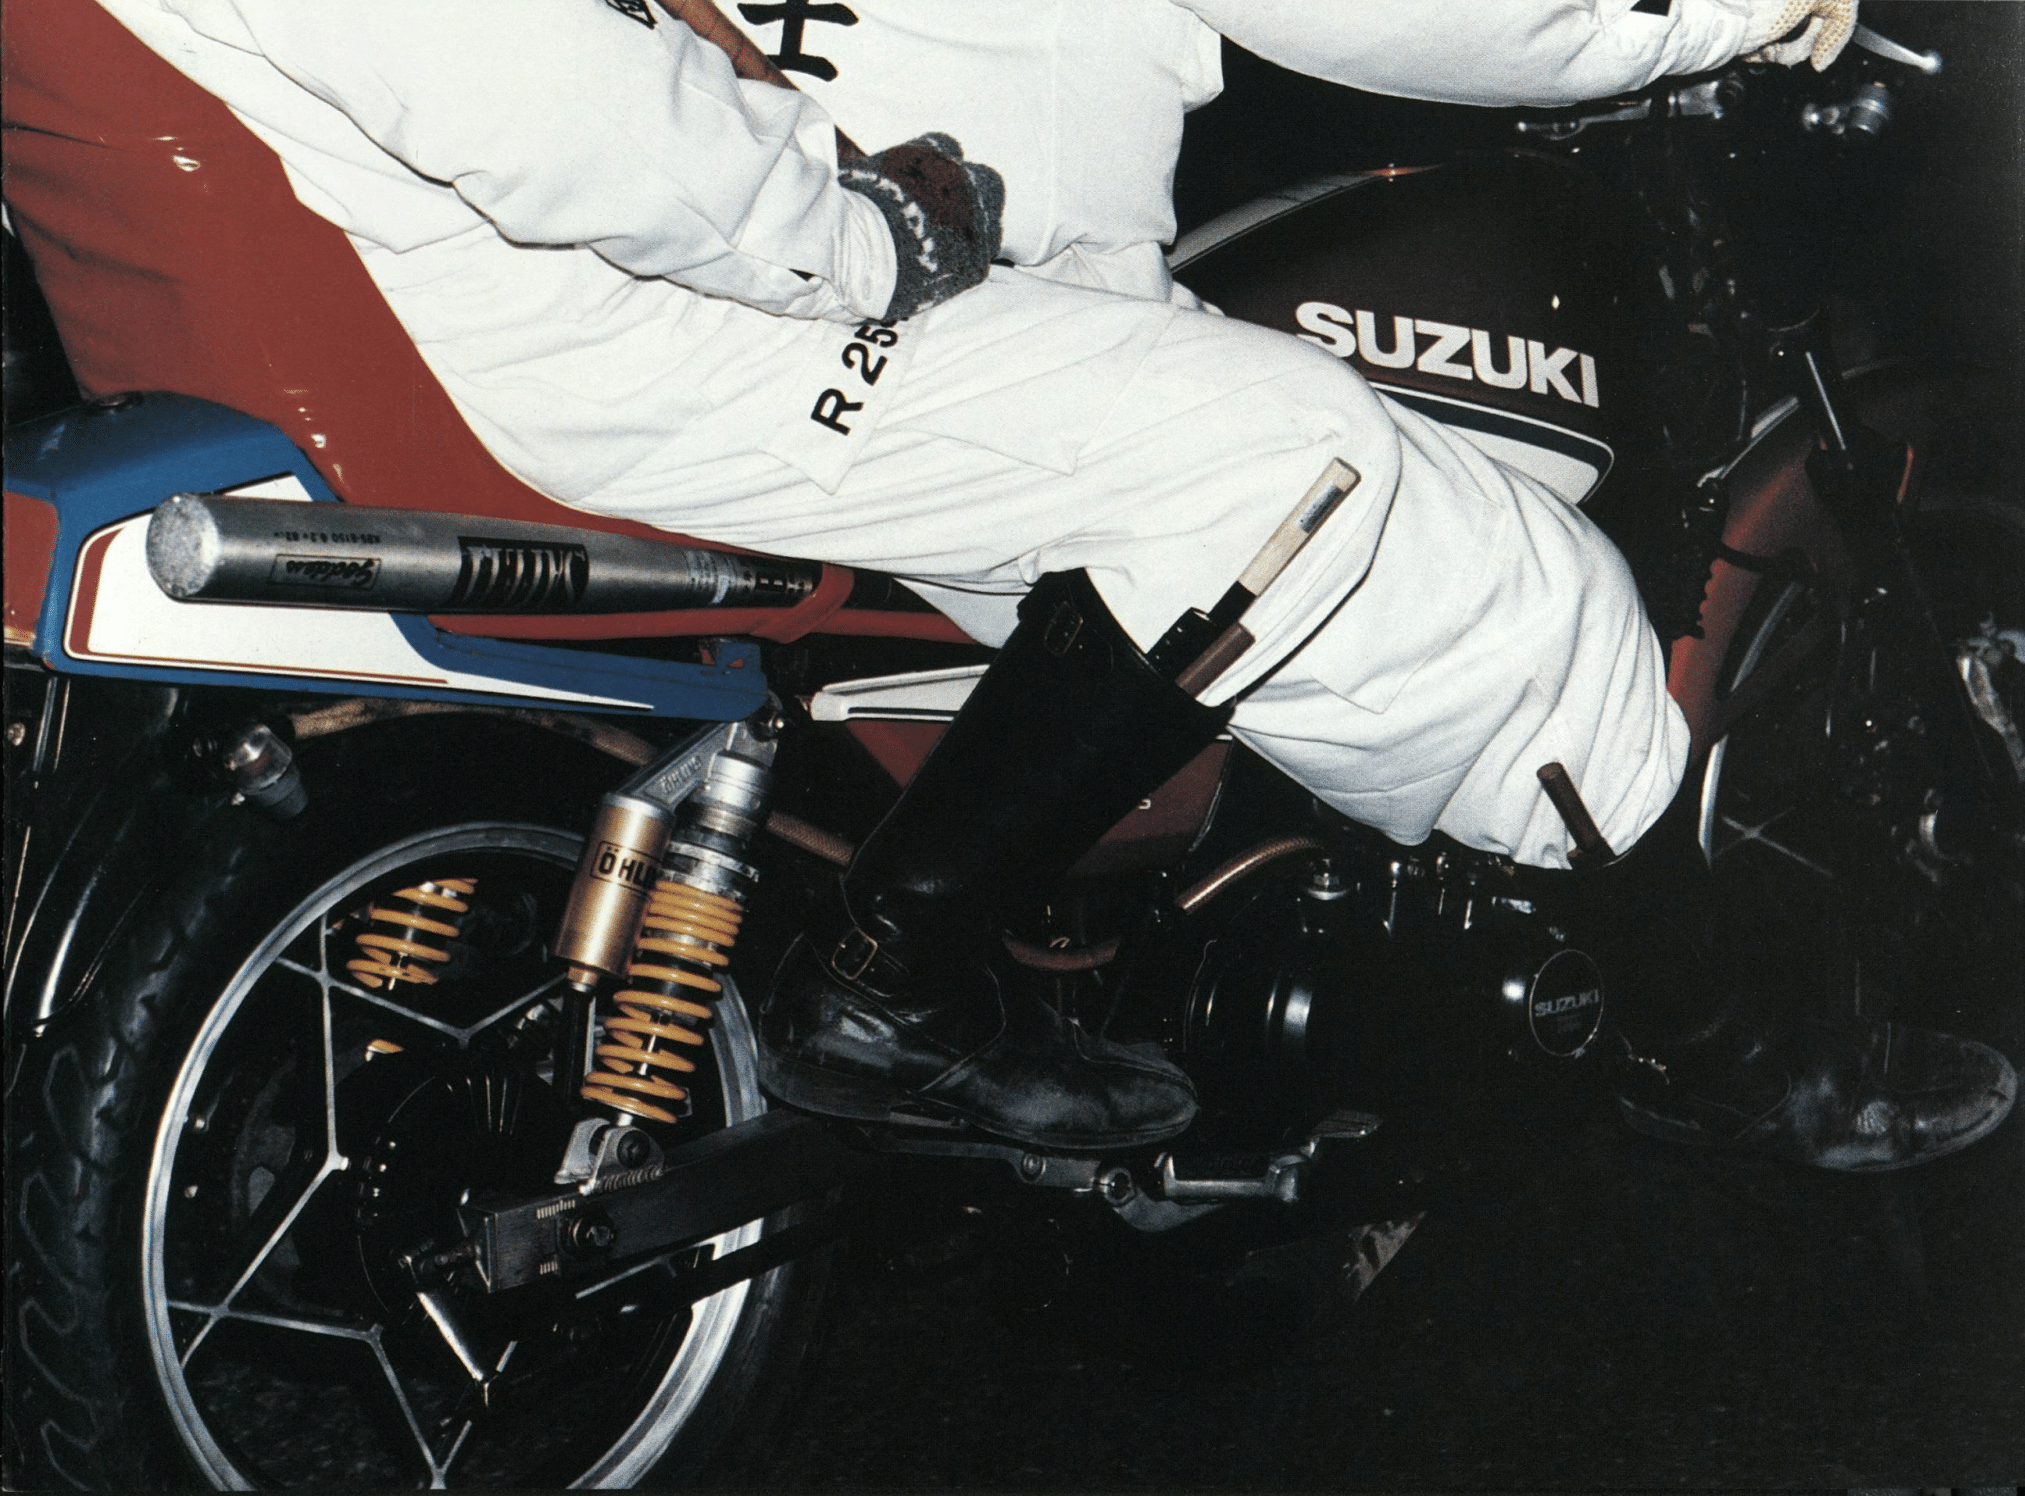 Close up of knives hidden in the boots of two bōsōzoku members with a baseball bat strapped onto their motorcycle.